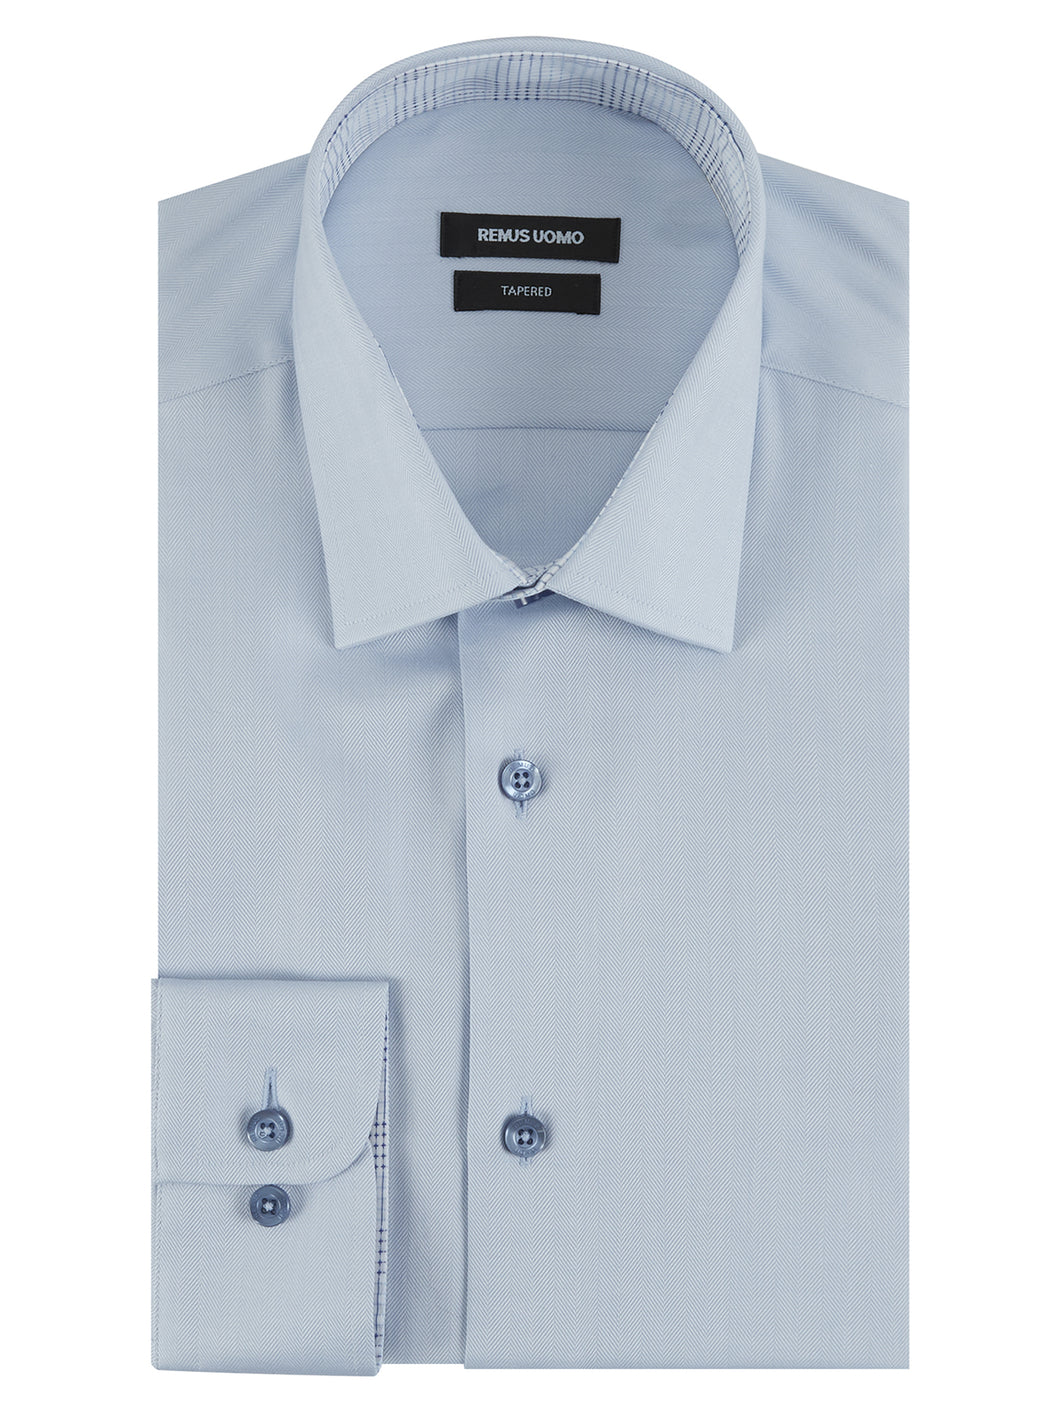 Remus Uomo Plain Herringbone Shirt Blue